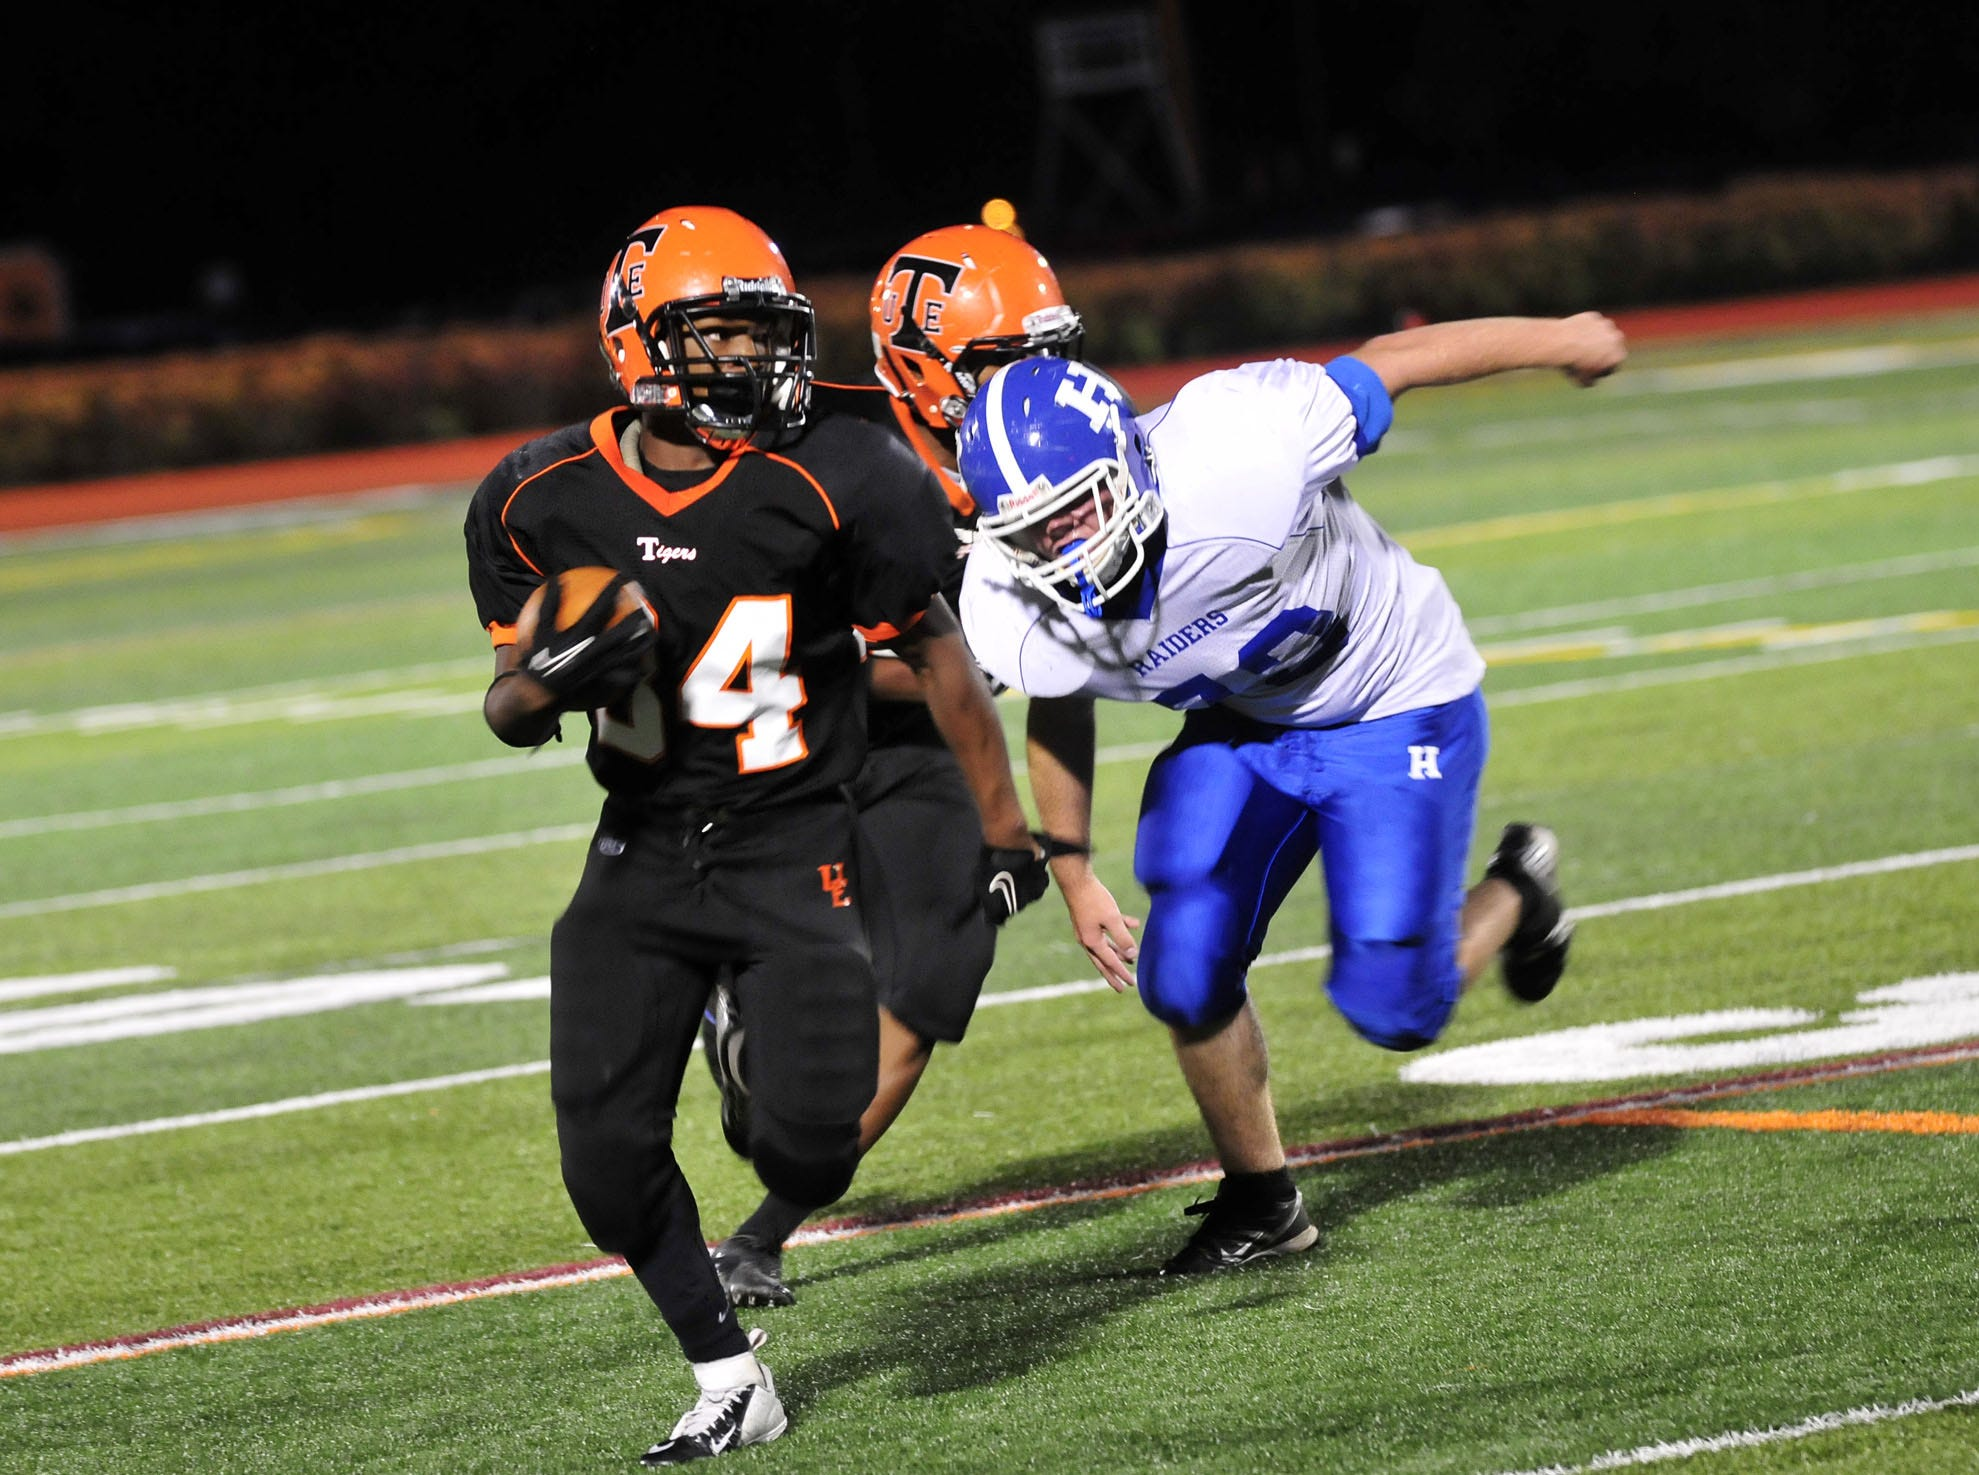 Union-Endicott's Hezekiah Morgan is chased by Horseheads' Mitchell Elliott on a punt return in 2012.